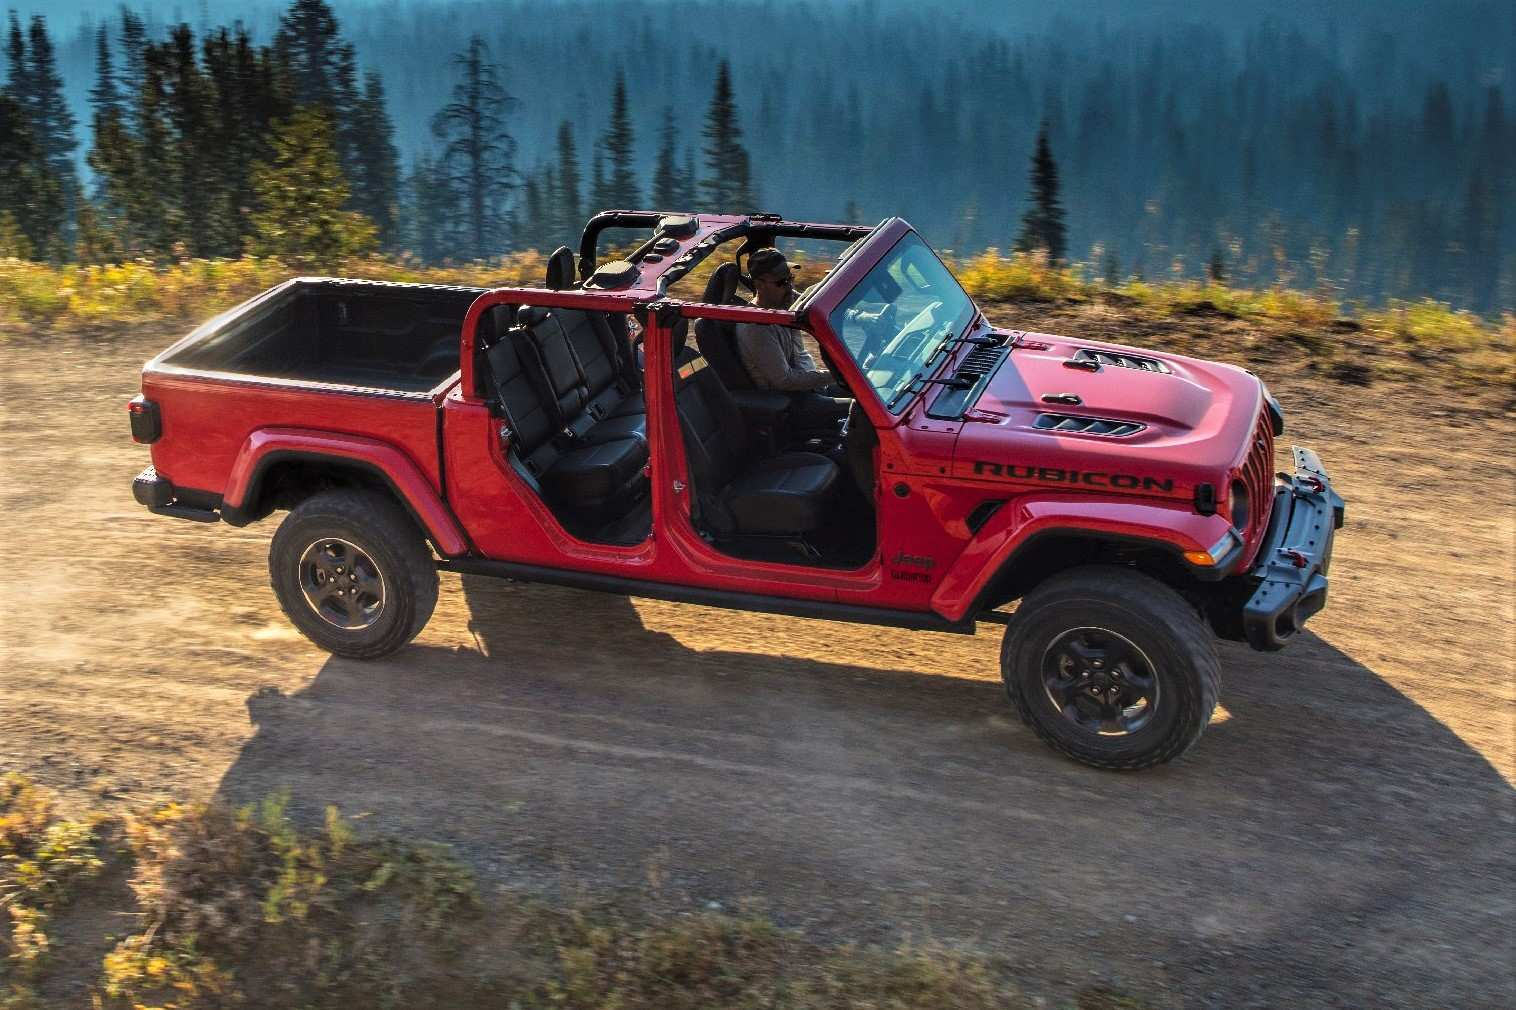 78 Great 2020 Jeep Gladiator Interior Concept with 2020 Jeep Gladiator Interior